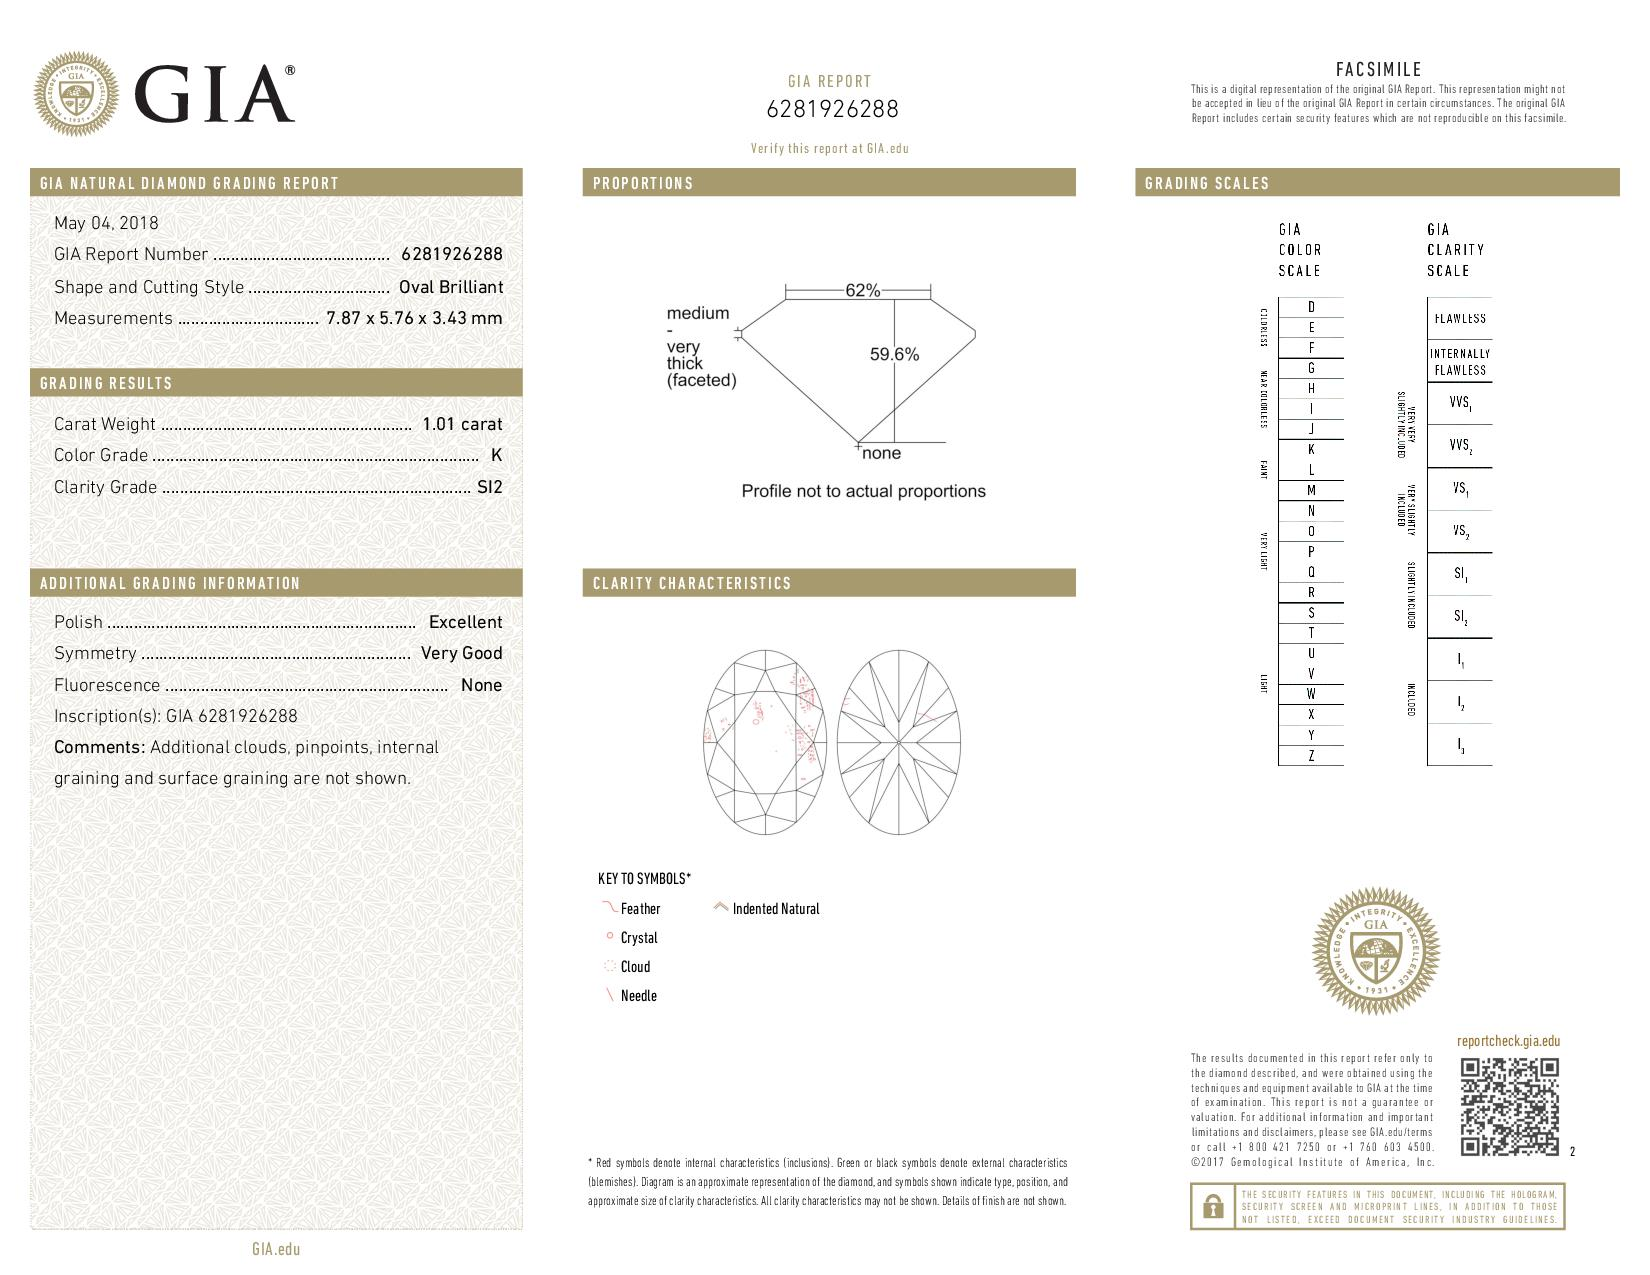 This is a 1.01 carat oval shape, K color, SI2 clarity natural diamond accompanied by a GIA grading report.